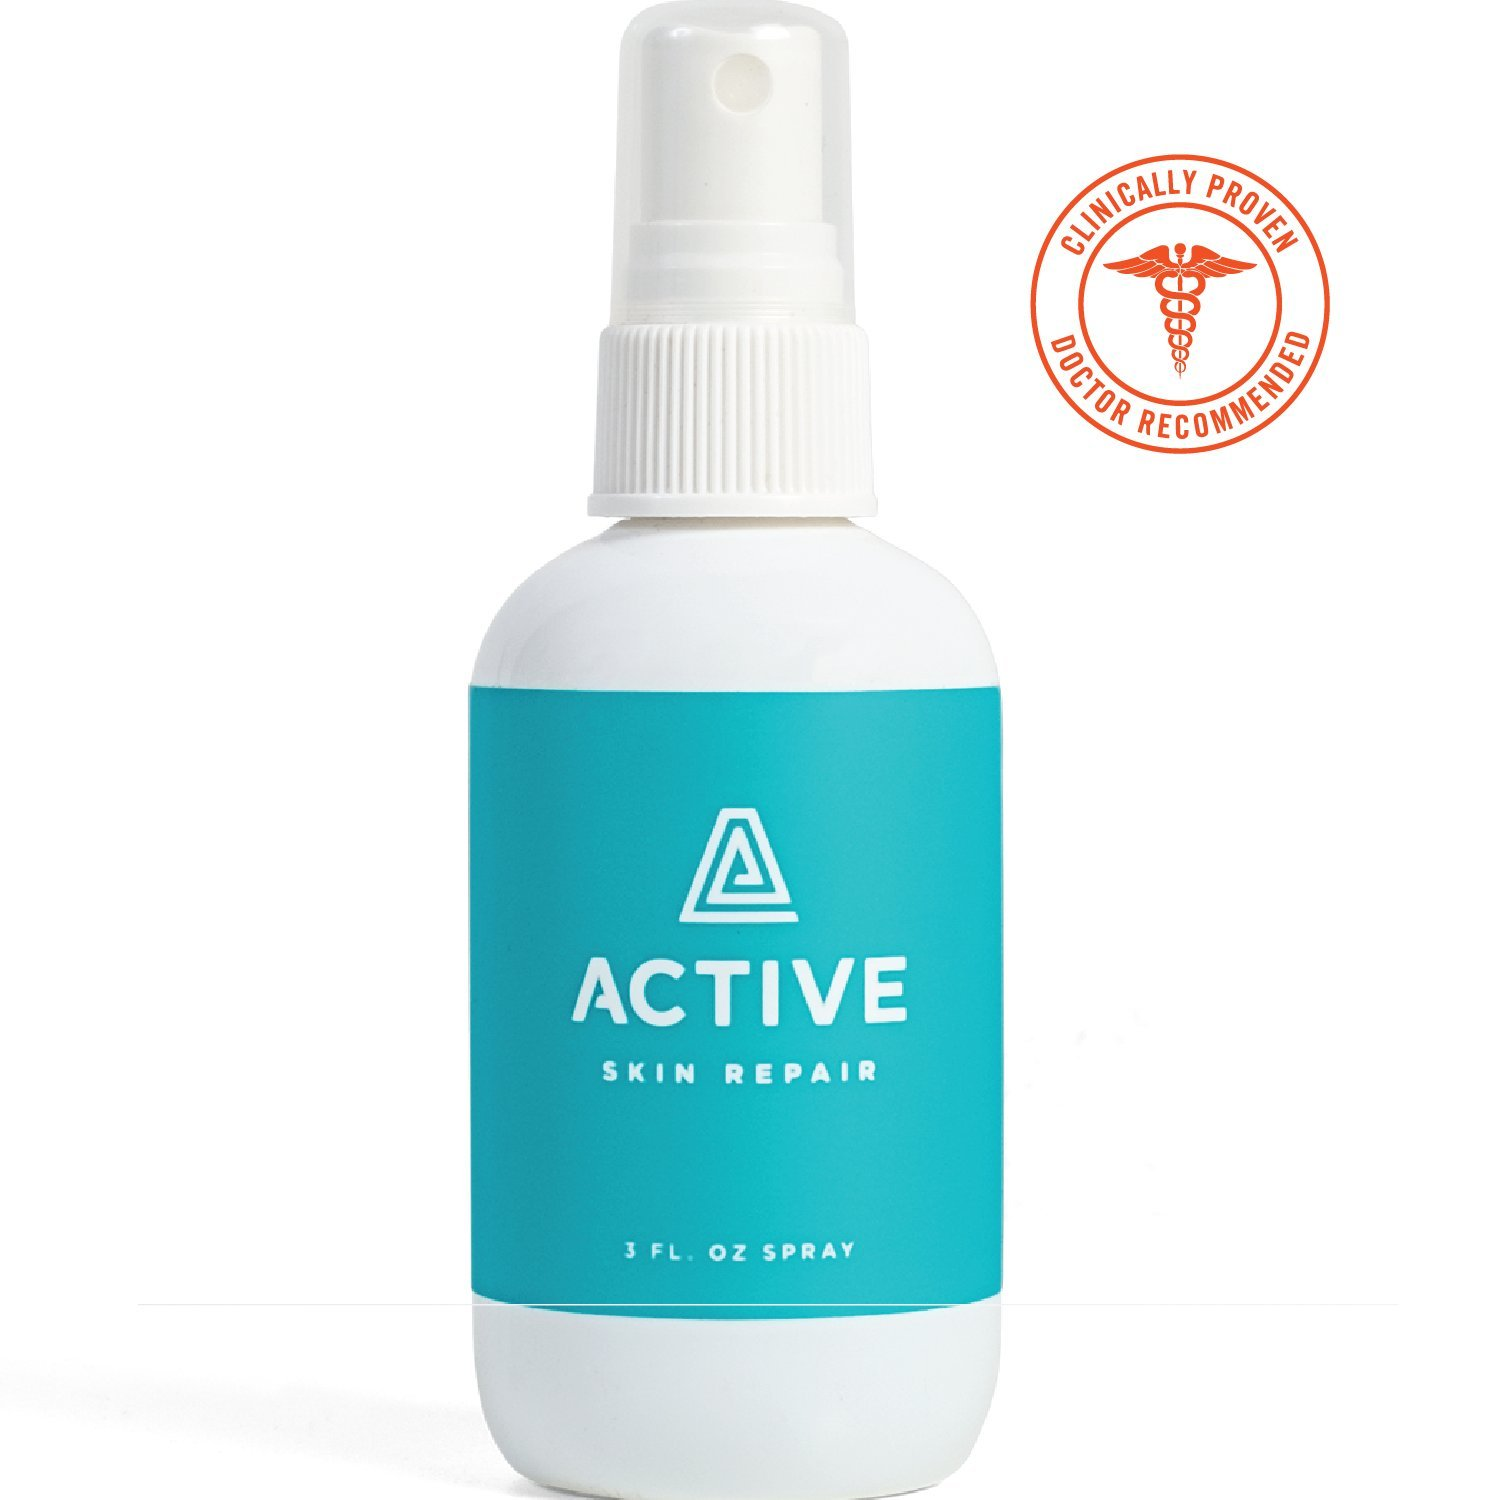 ACTIVE Skin Repair Spray – Natural Antibacterial Healing Ointment & Antiseptic Spray for cuts, scrapes, rashes, sunburns and other skin irritations (3oz)